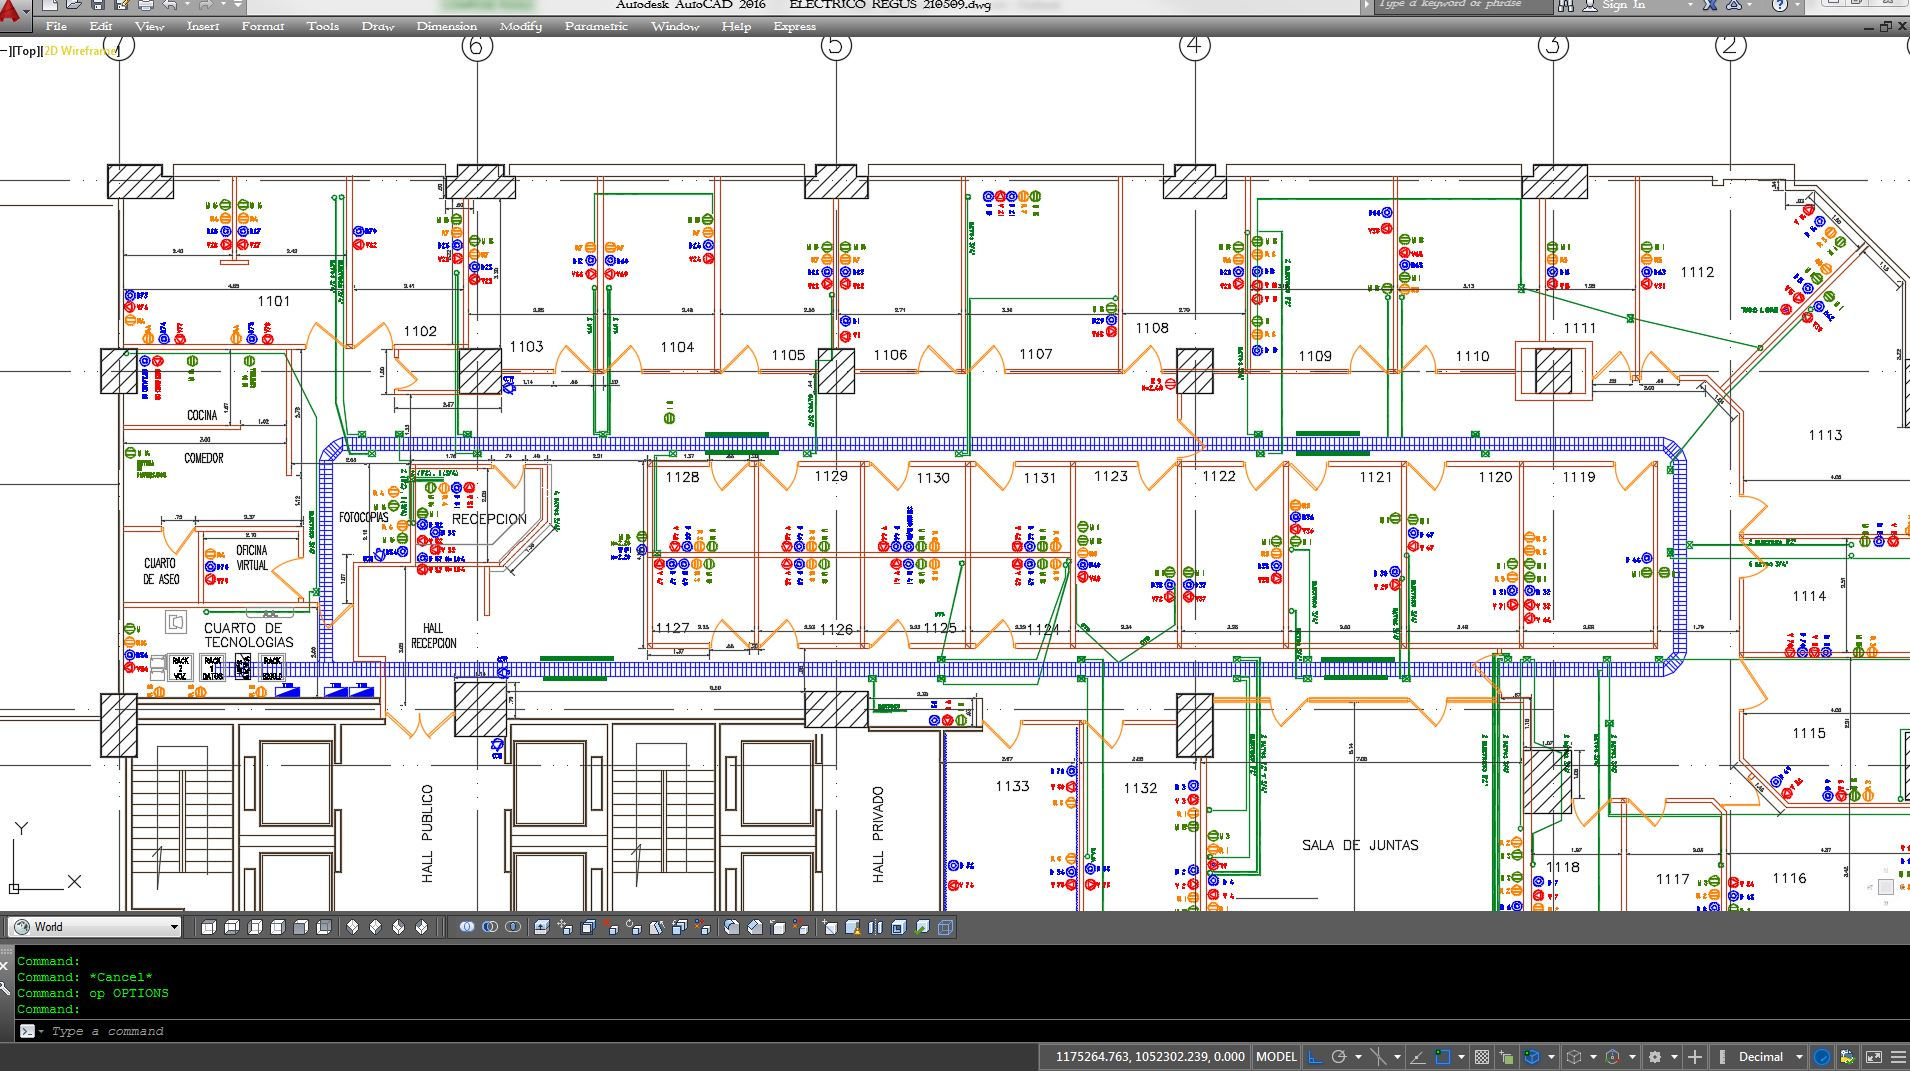 Commercial Kitchen Gas Piping Diagram Appliances Tips And Riser Mep Plumbing Cad Services 2d Drafting 3d Modeling Central Rh Cadcentral Com